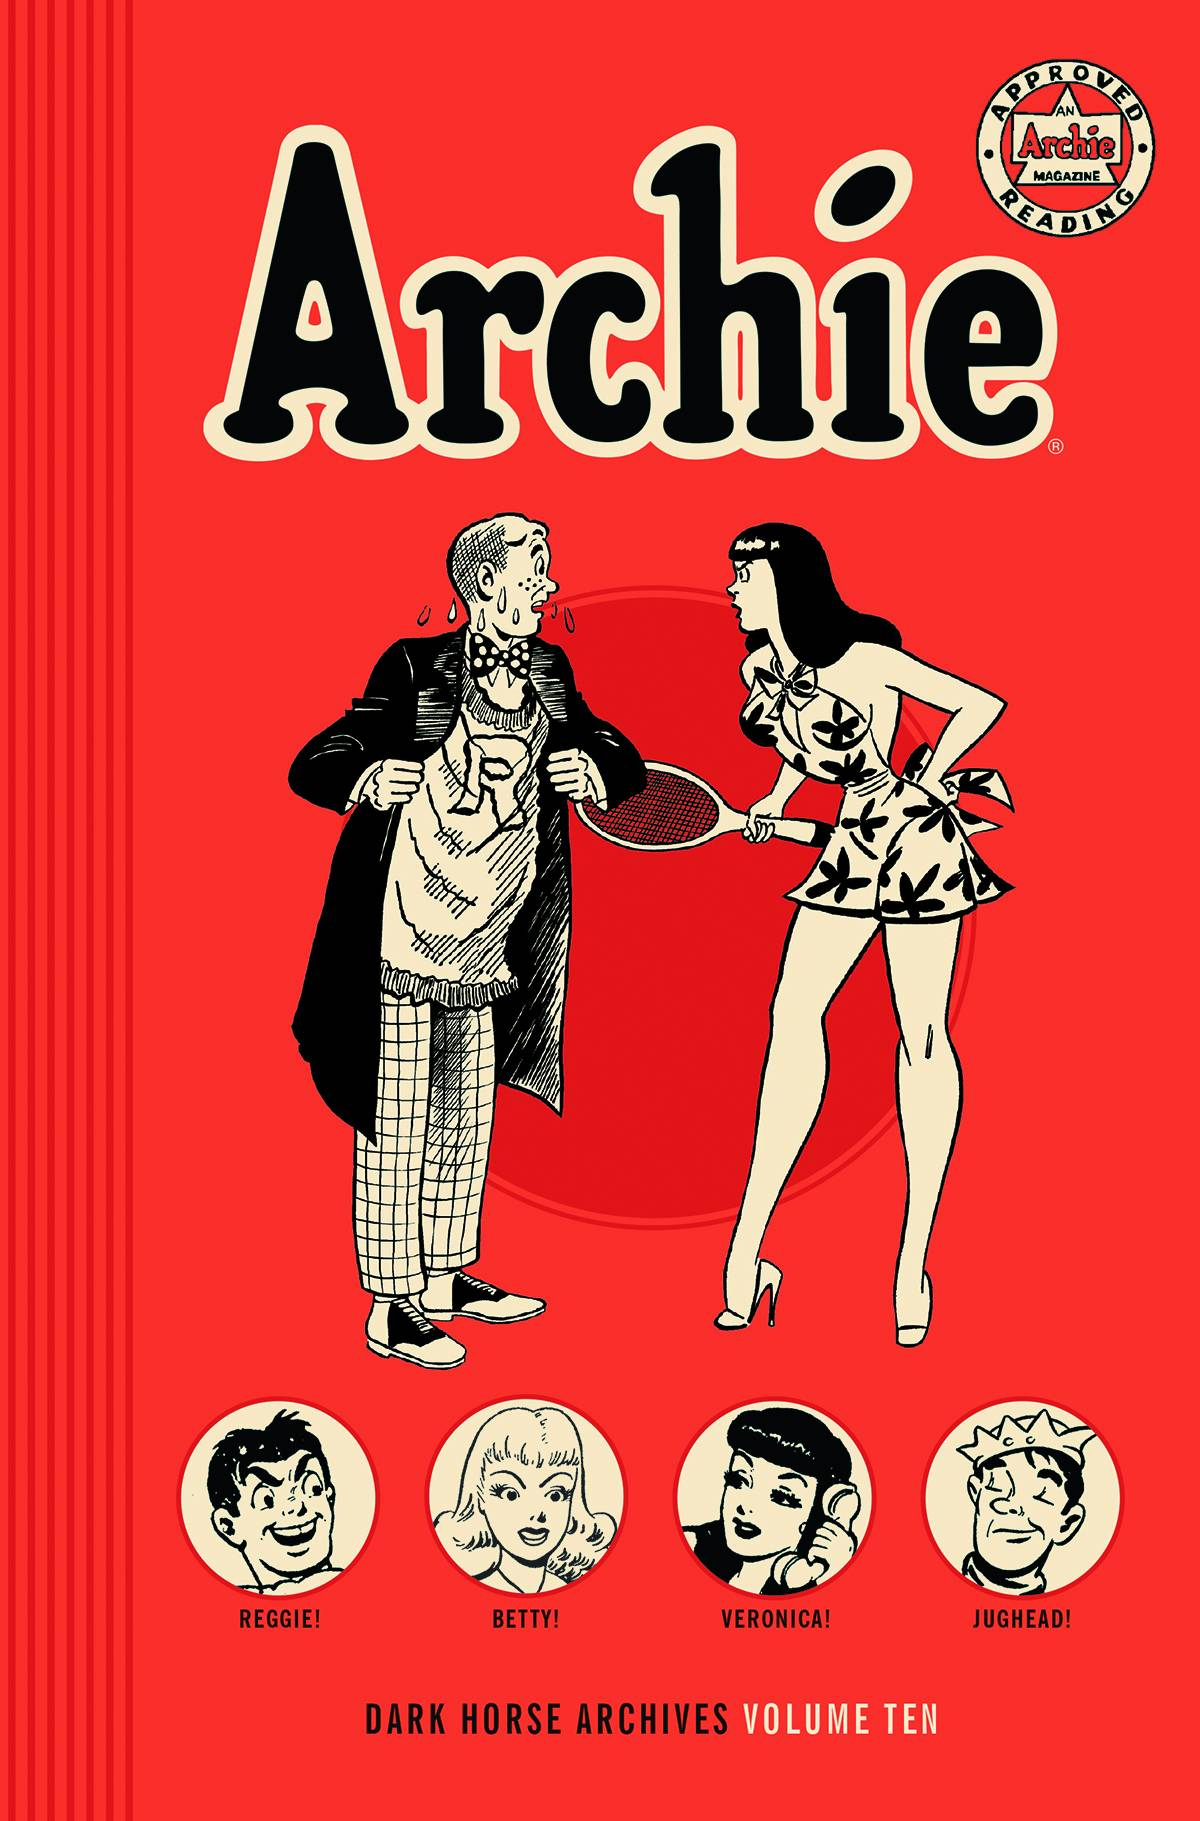 Archie's Archives Vol 10 Hardcover